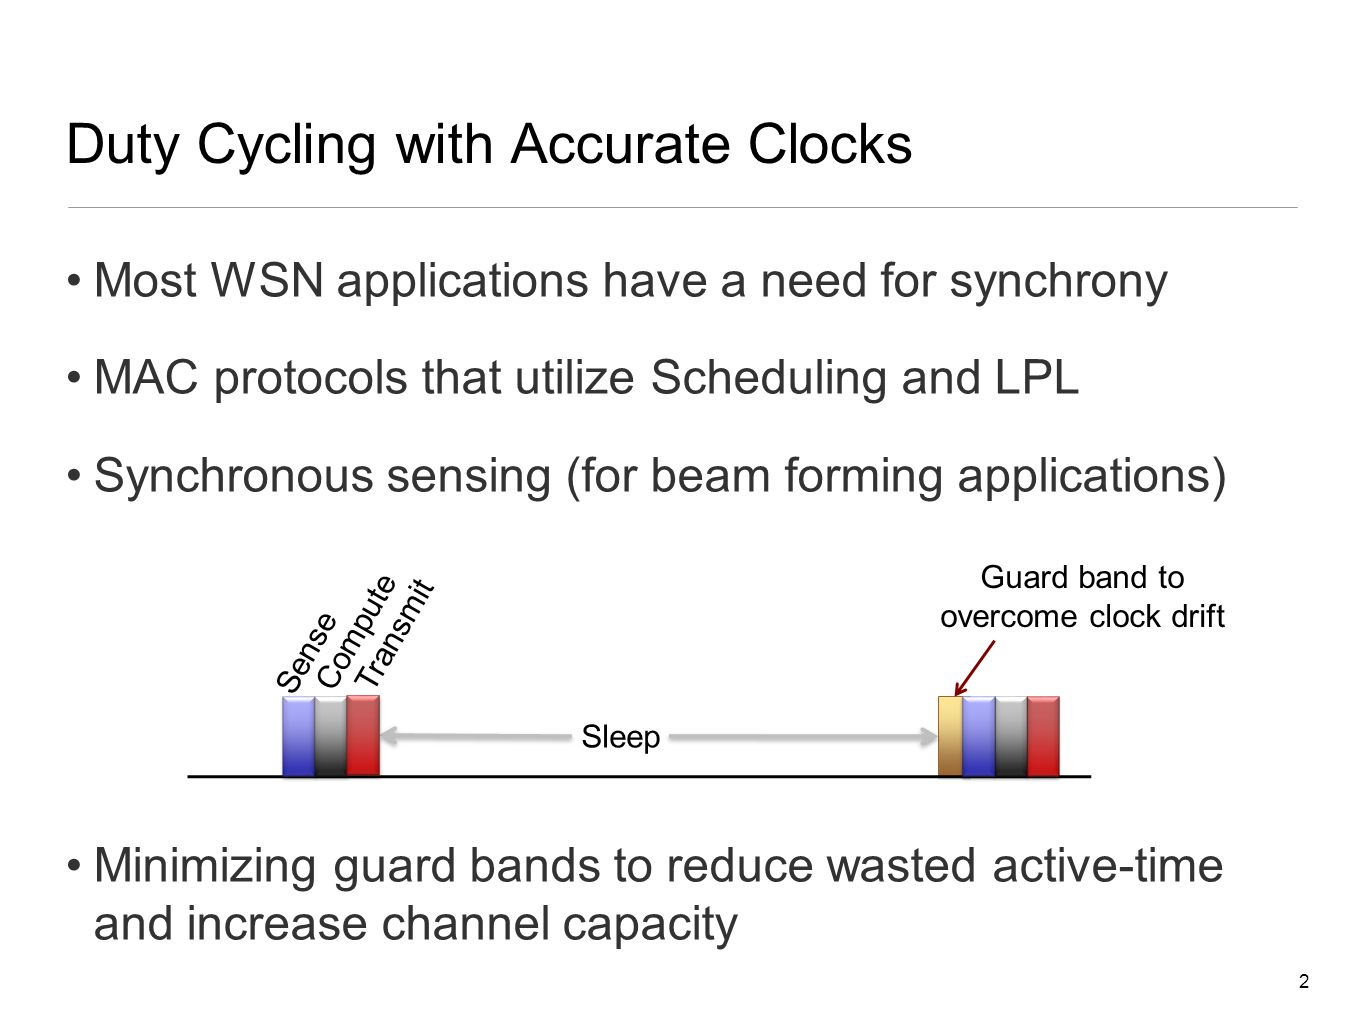 Duty Cycling with Accurate Clocks Most WSN applications have a need for synchrony MAC protocols that utilize Scheduling and LPL Synchronous sensing (for beam forming applications) Minimizing guard bands to reduce wasted active-time and increase channel capacity 2 Sense Compute Sleep Guard band to overcome clock drift Transmit